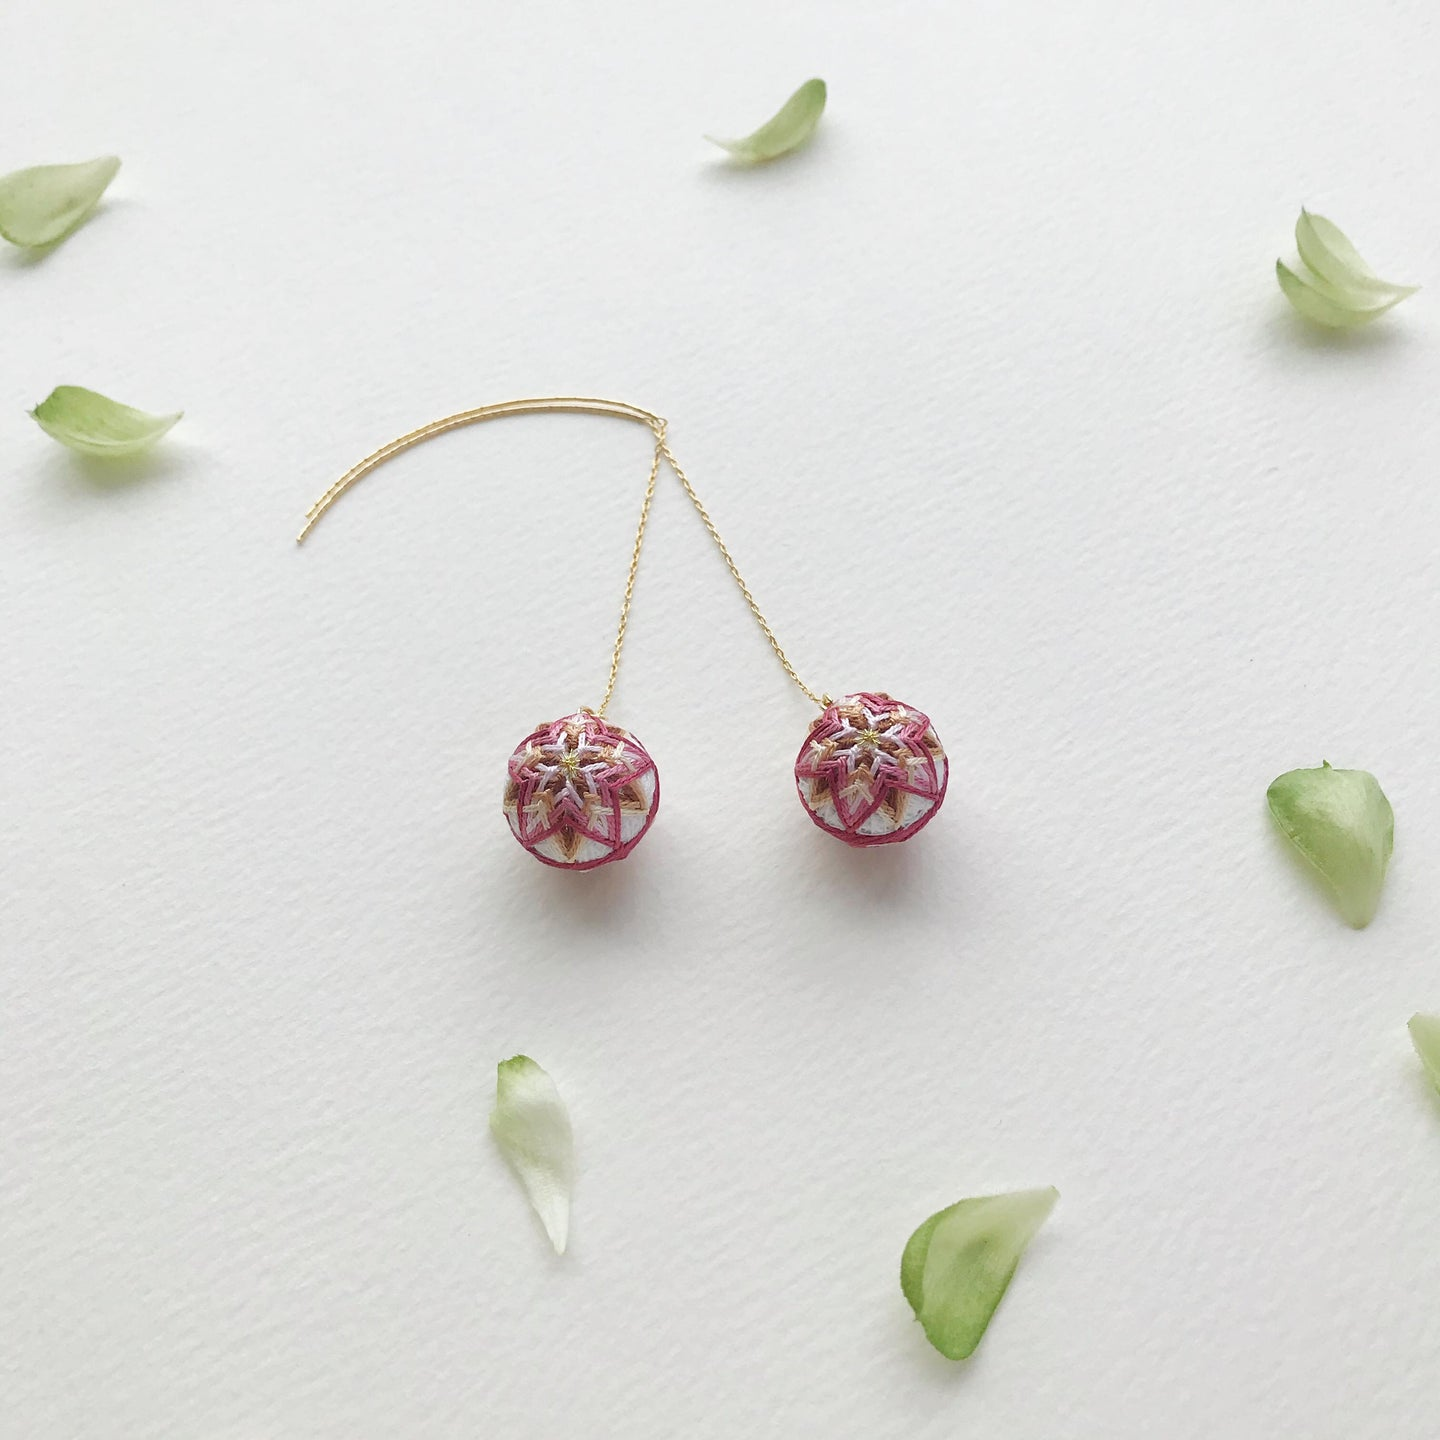 Temari Mame-suzu Temari pierced earrings / earrings Chou shun ka (China rose ) white